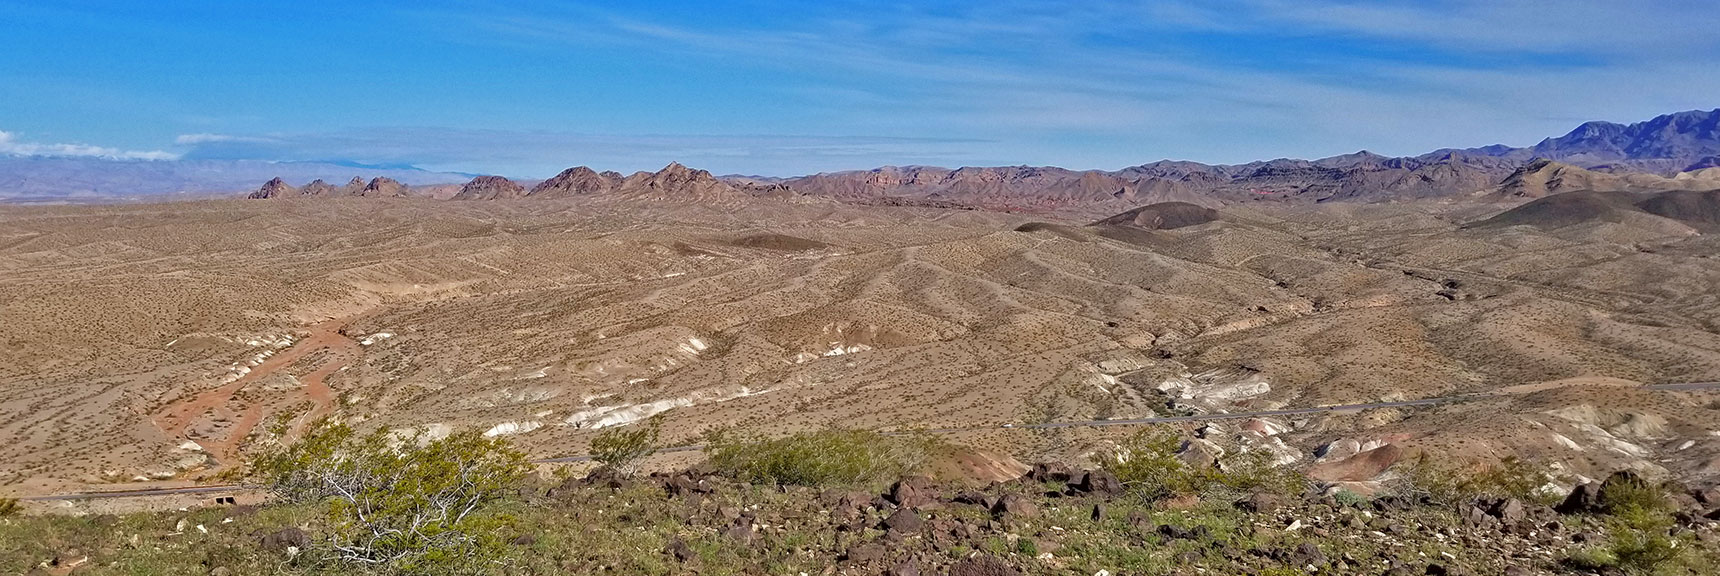 View North Toward Muddy Mountains From Black Mesa in Lake Mead National Recreation Area, Nevada